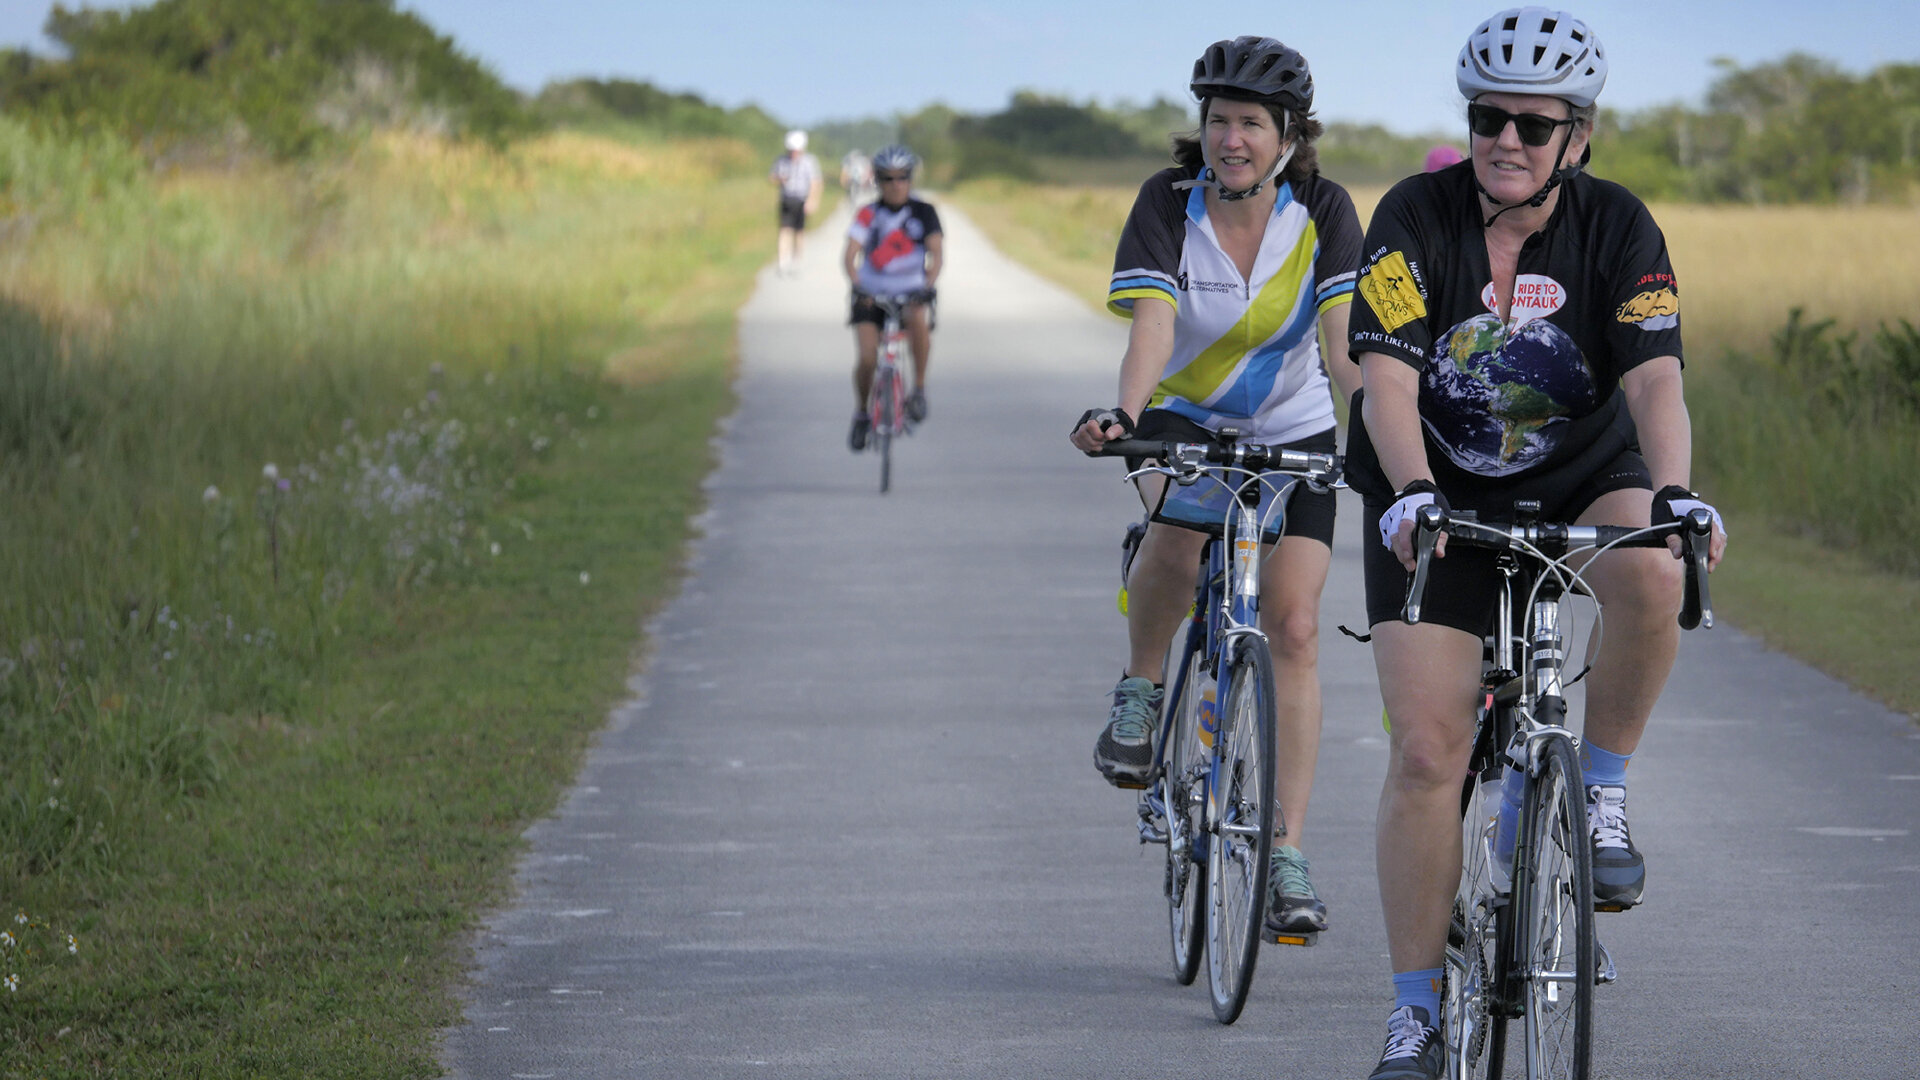 Cyclists ride the bike path to the Florida Keys